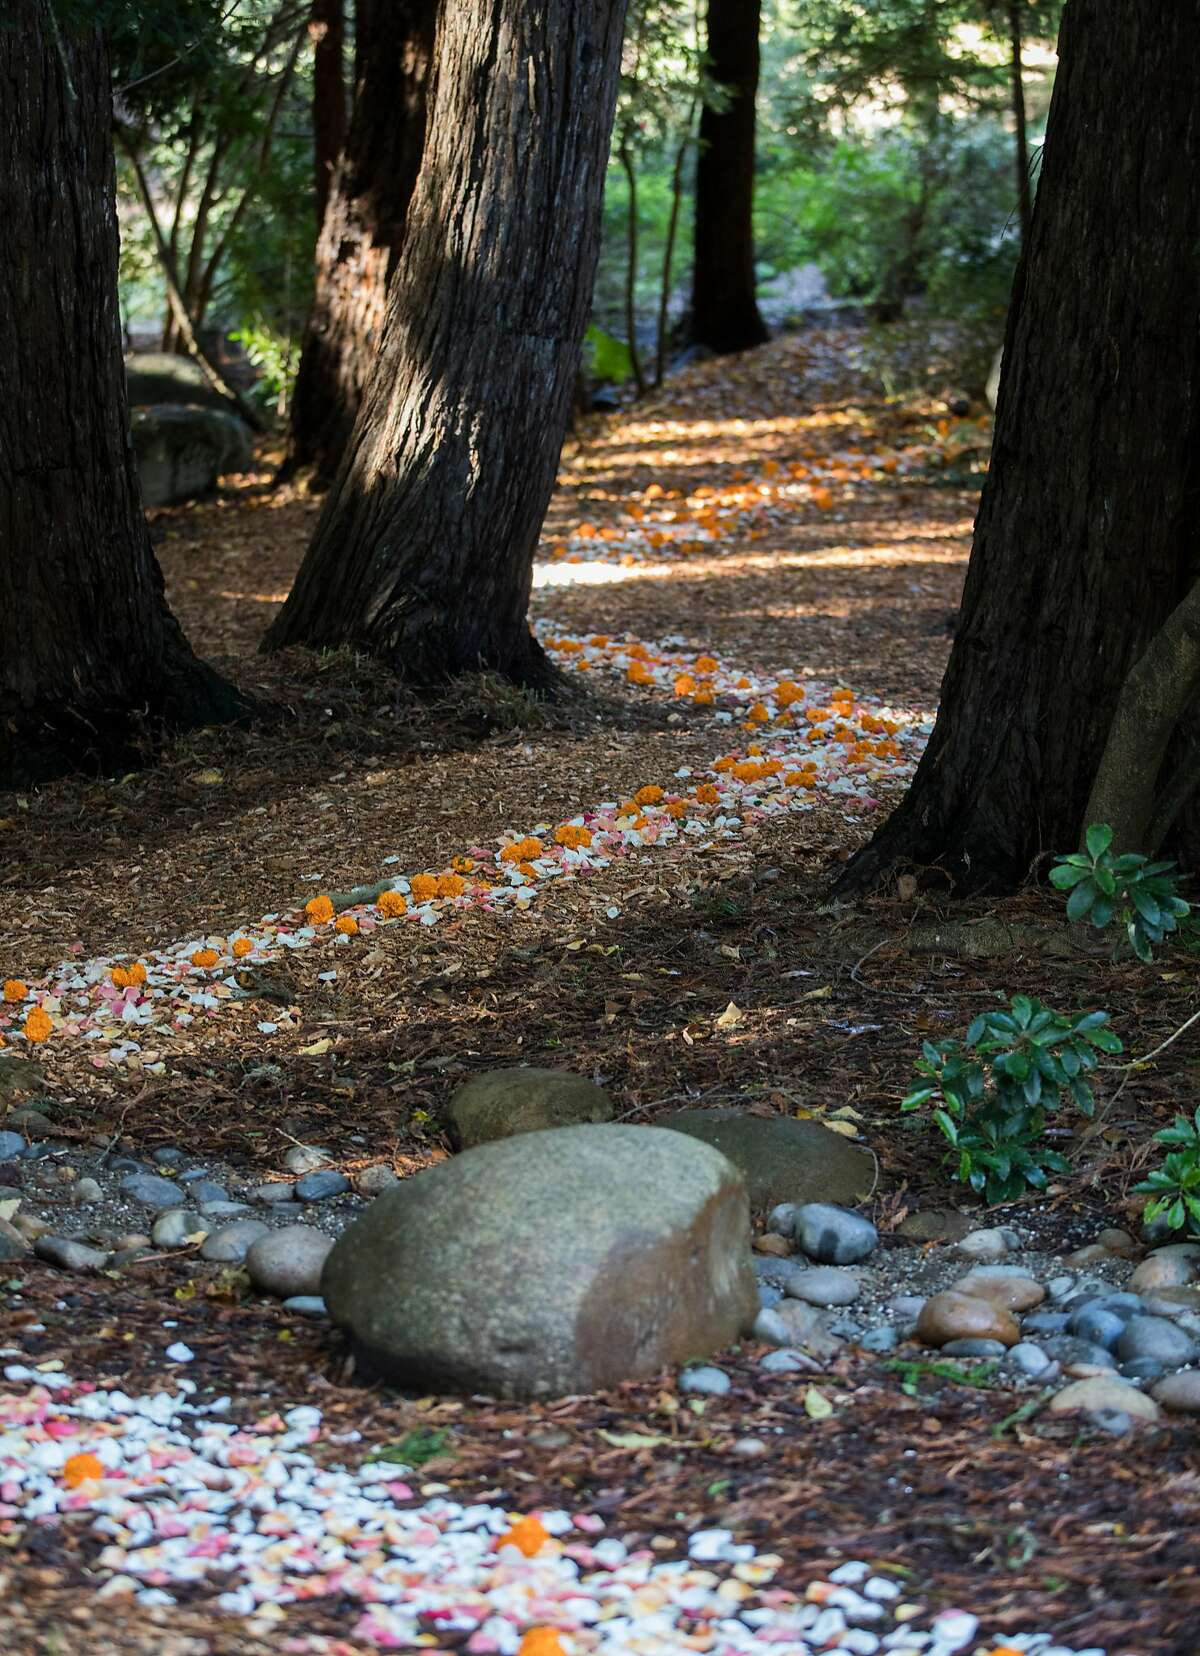 A trail of flower petals leads into the National Aids Memorial Grove at Golden Gate Park in San Francisco, Calif. Saturday, Dec. 1, 2018 during an observance of World Aids Day.